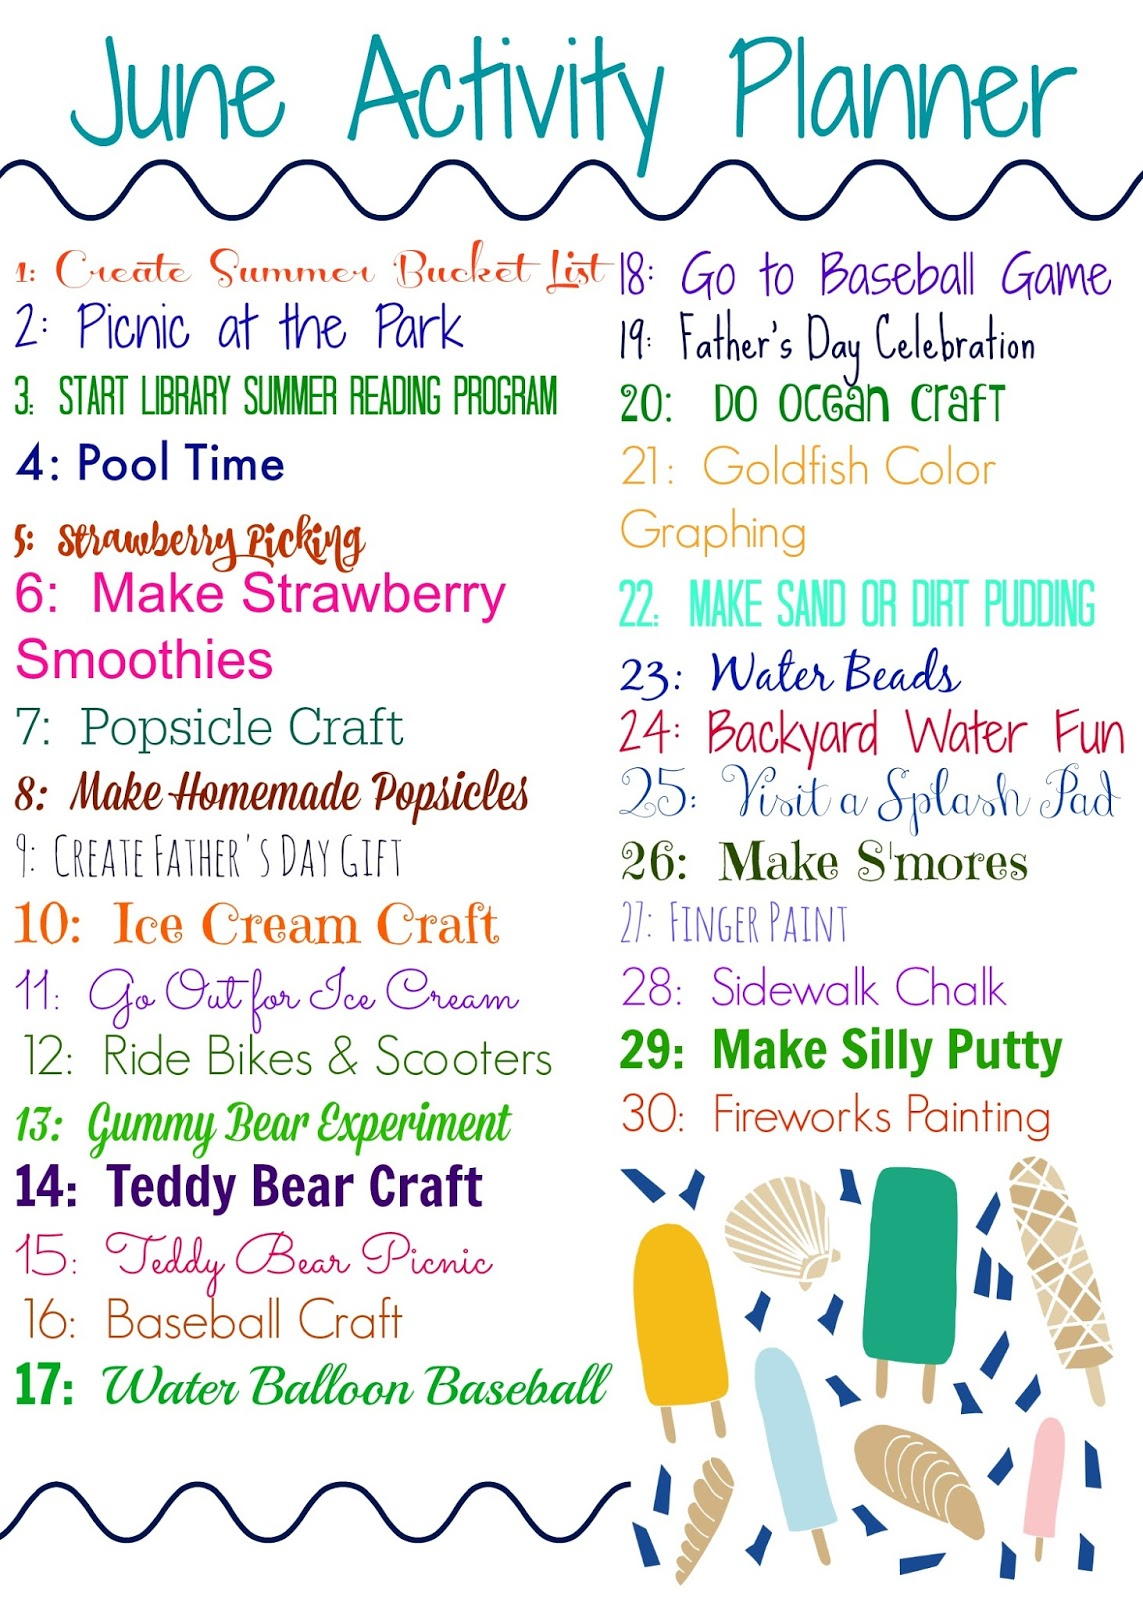 june activity planner for kids free printable the chirping moms